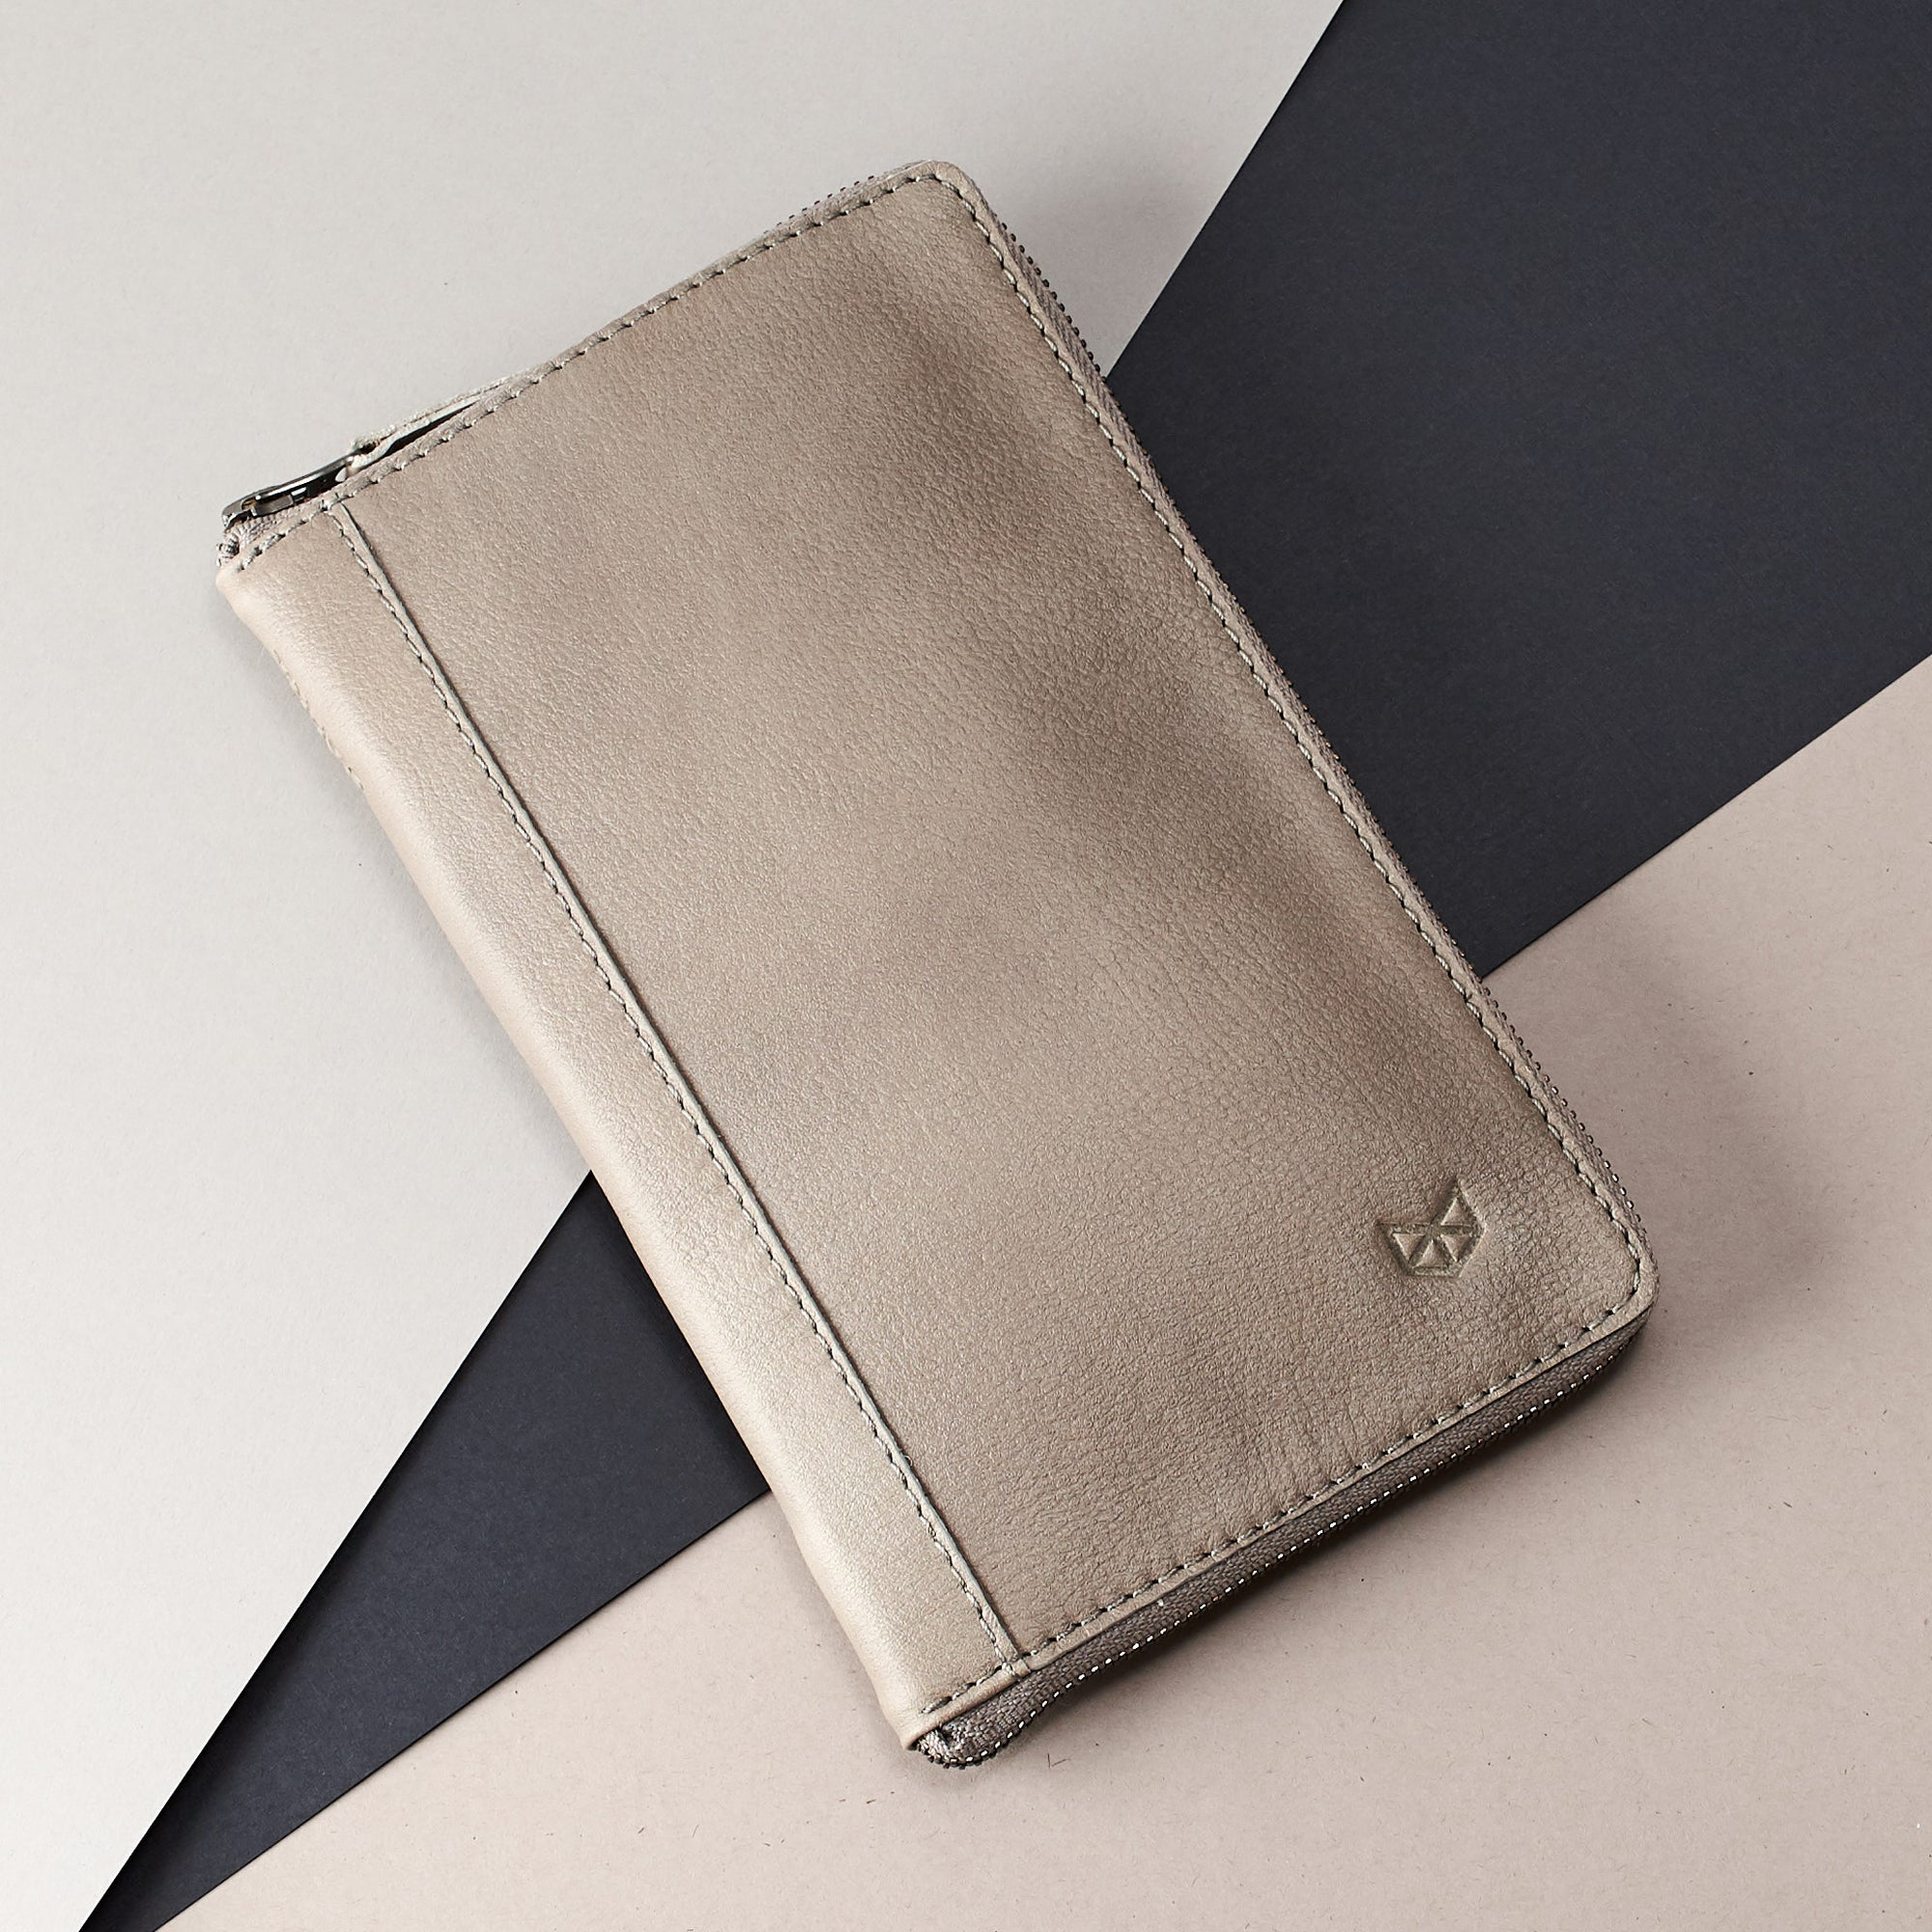 Passport Holders Cover Travel Essentials for Men